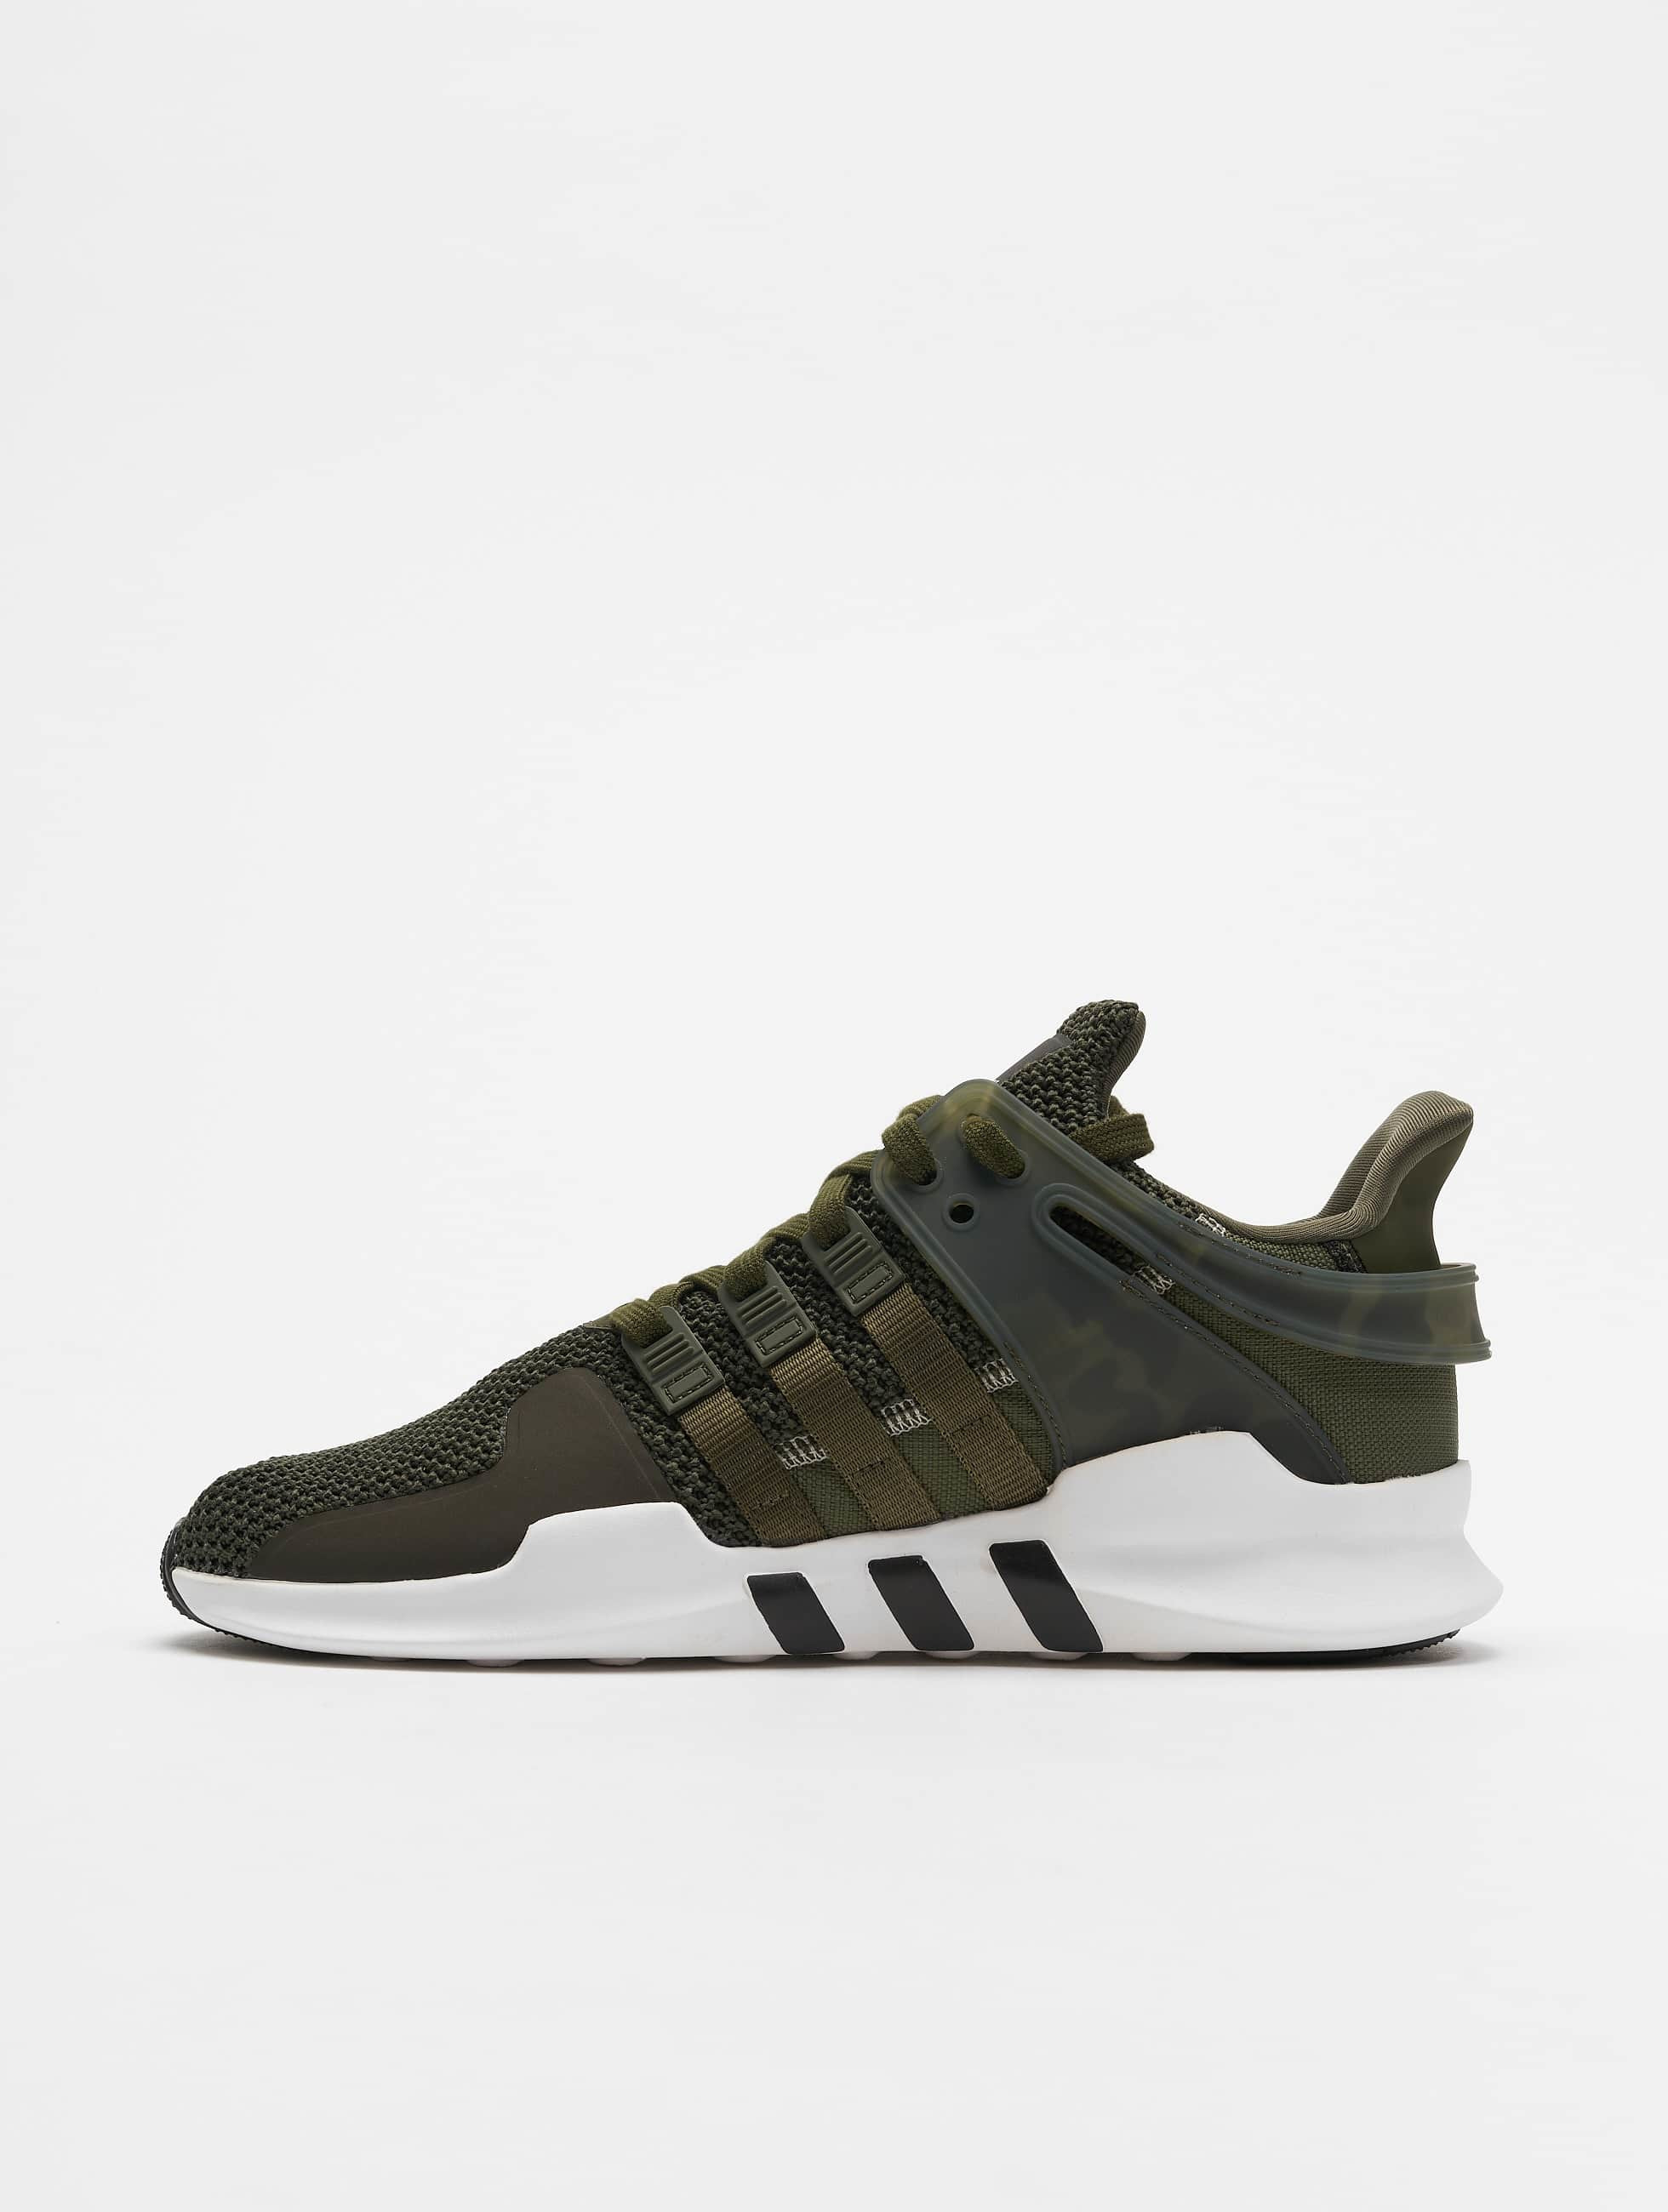 Adidas Originals Eqt Support Adv Sneakers Night Cargo